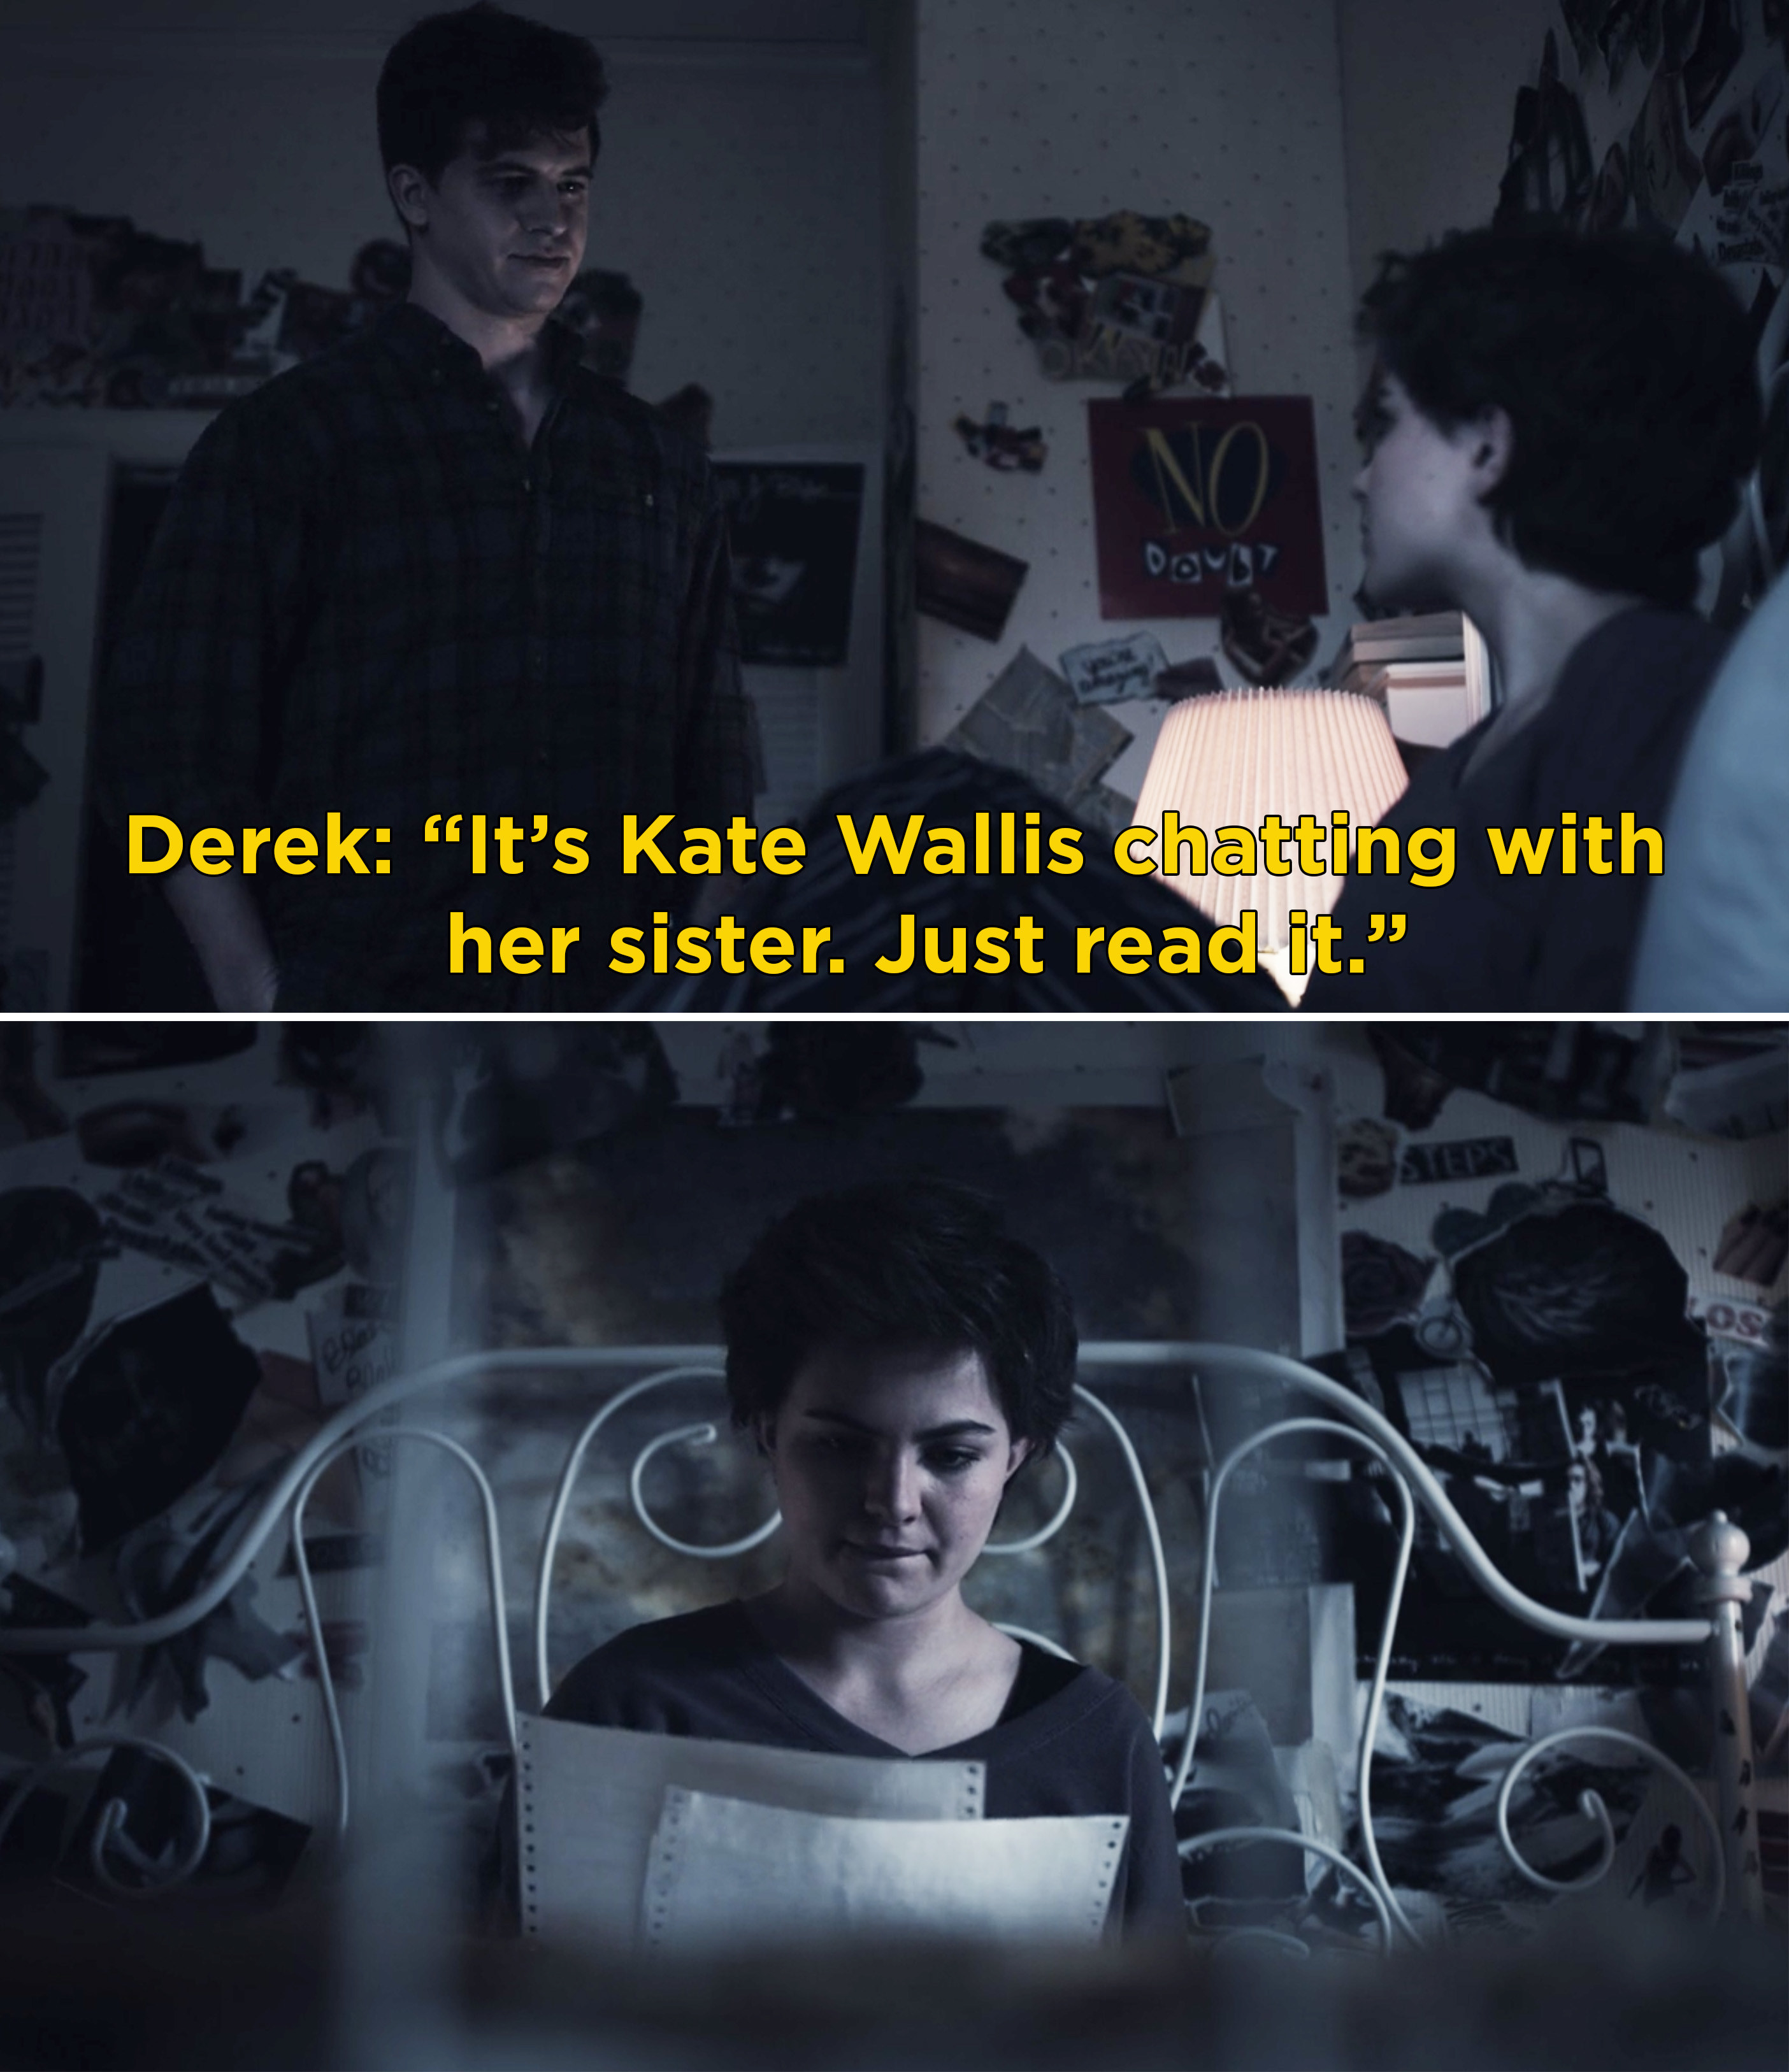 """Derek telling Jeanette, """"It's Kate Wallis chatting with her sister. Just read it"""""""